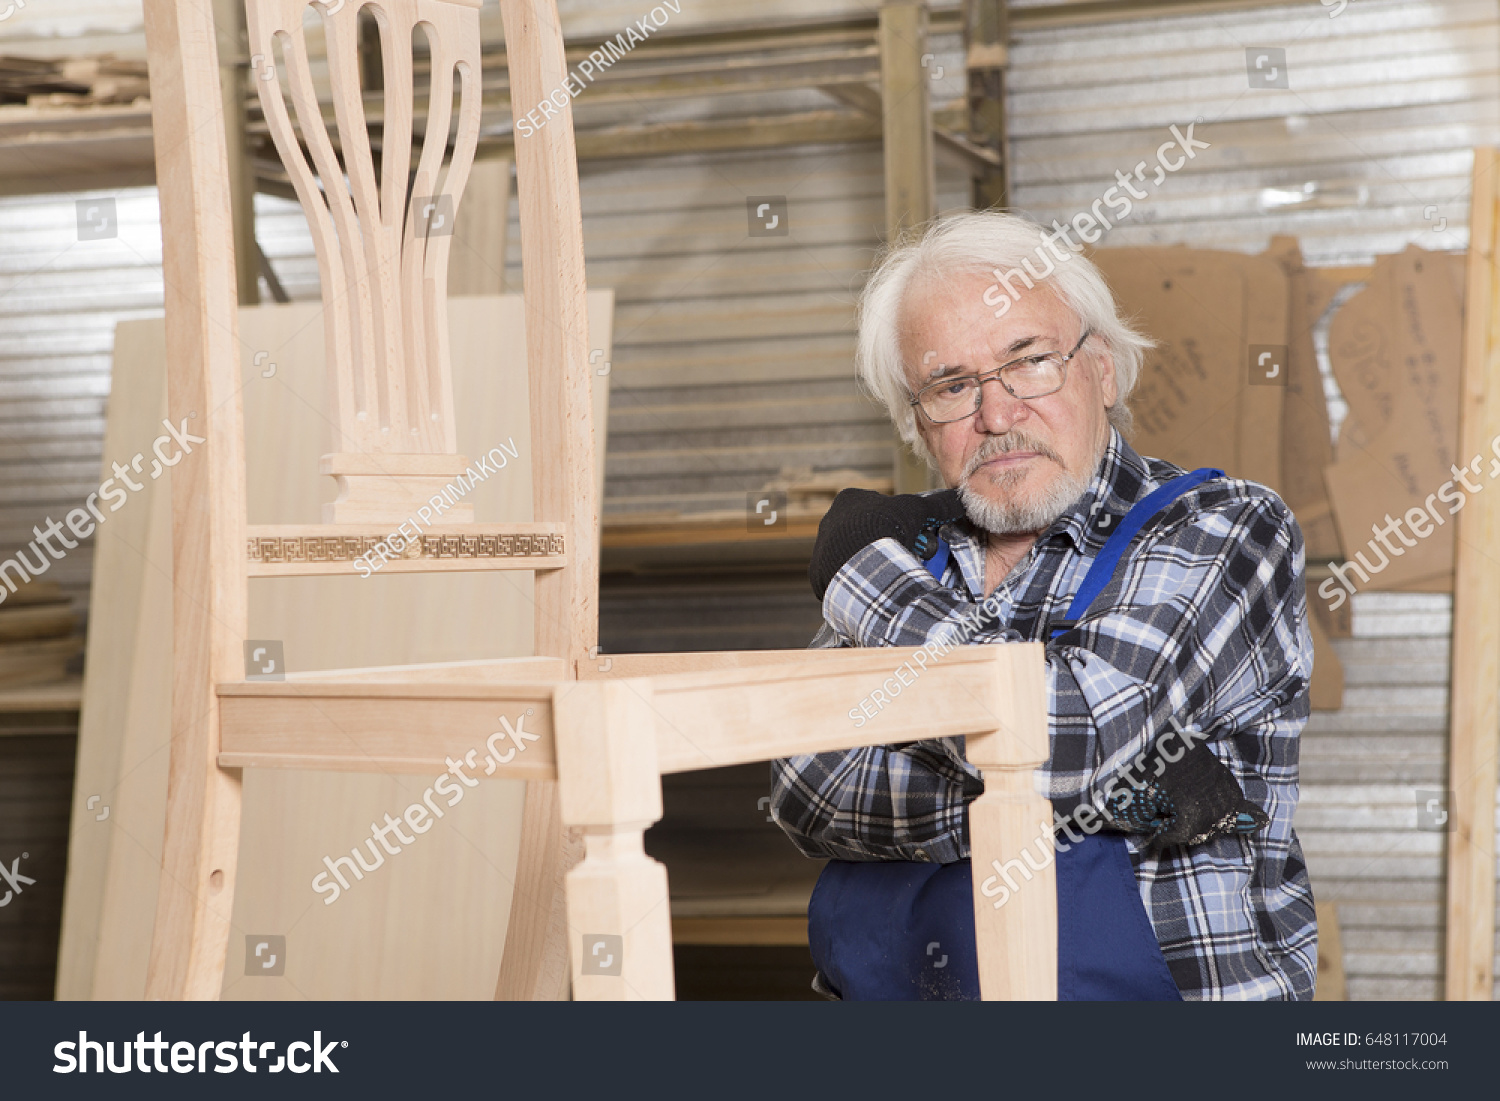 Serious furniture designer carefully polishes the chair frame, which he is busy manufacturing in his woodwork workshop, with shelves of wooden objects and patterns behind him #648117004